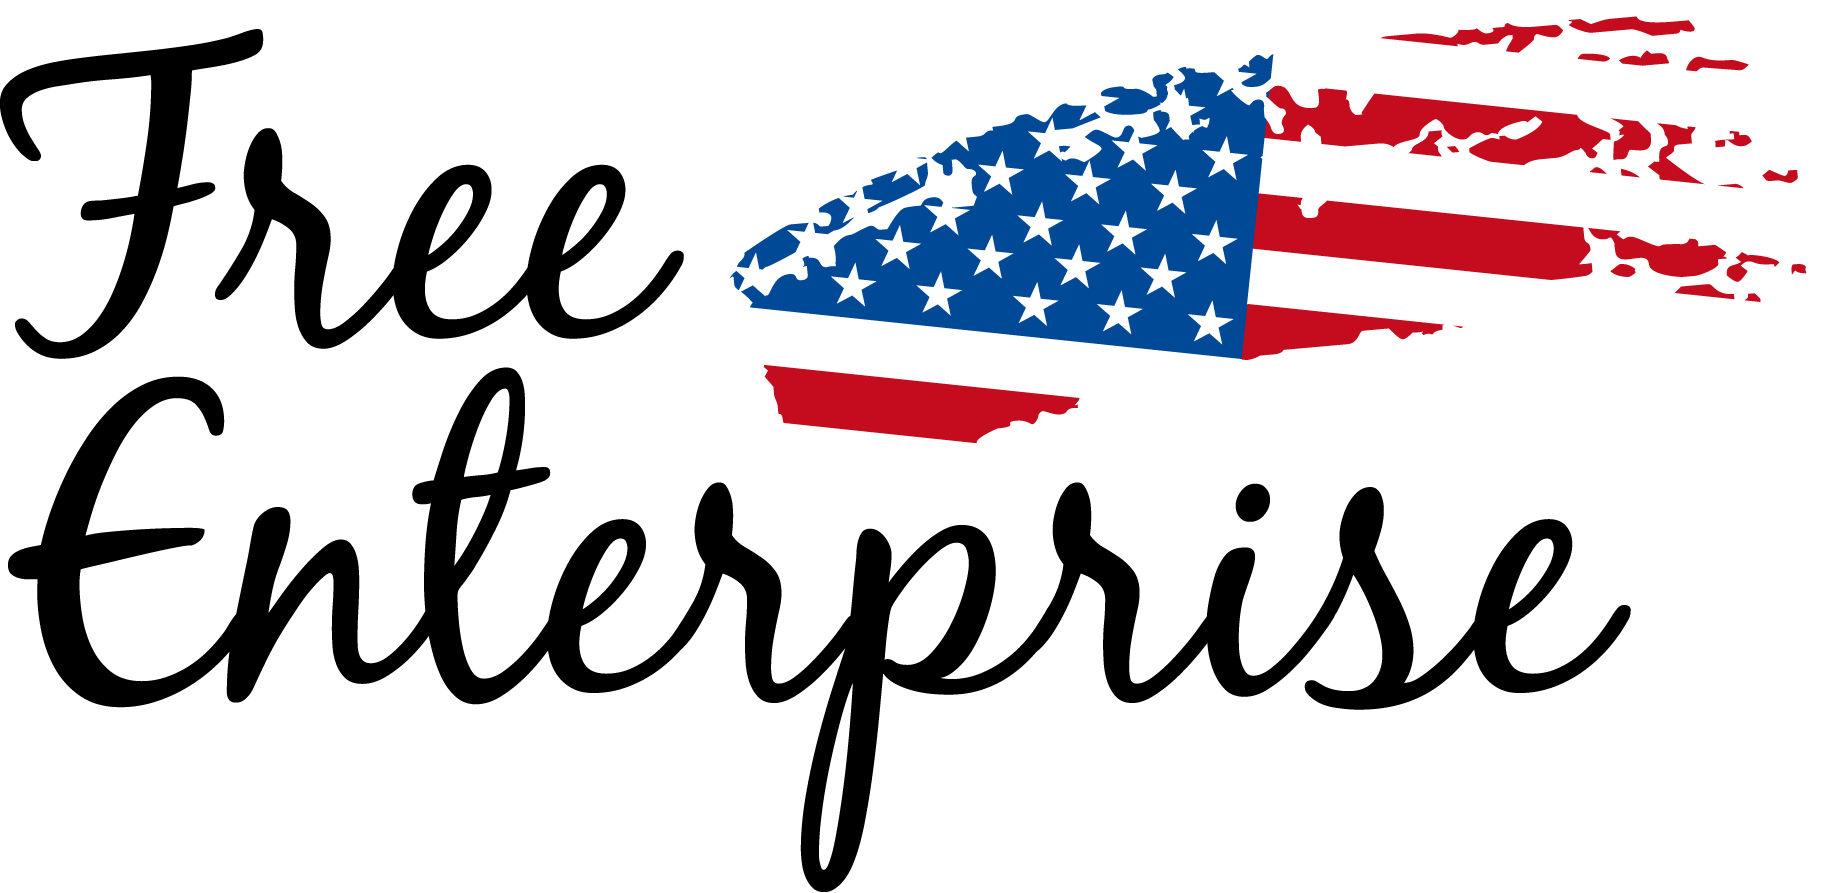 Free Enterprise Person of the Year